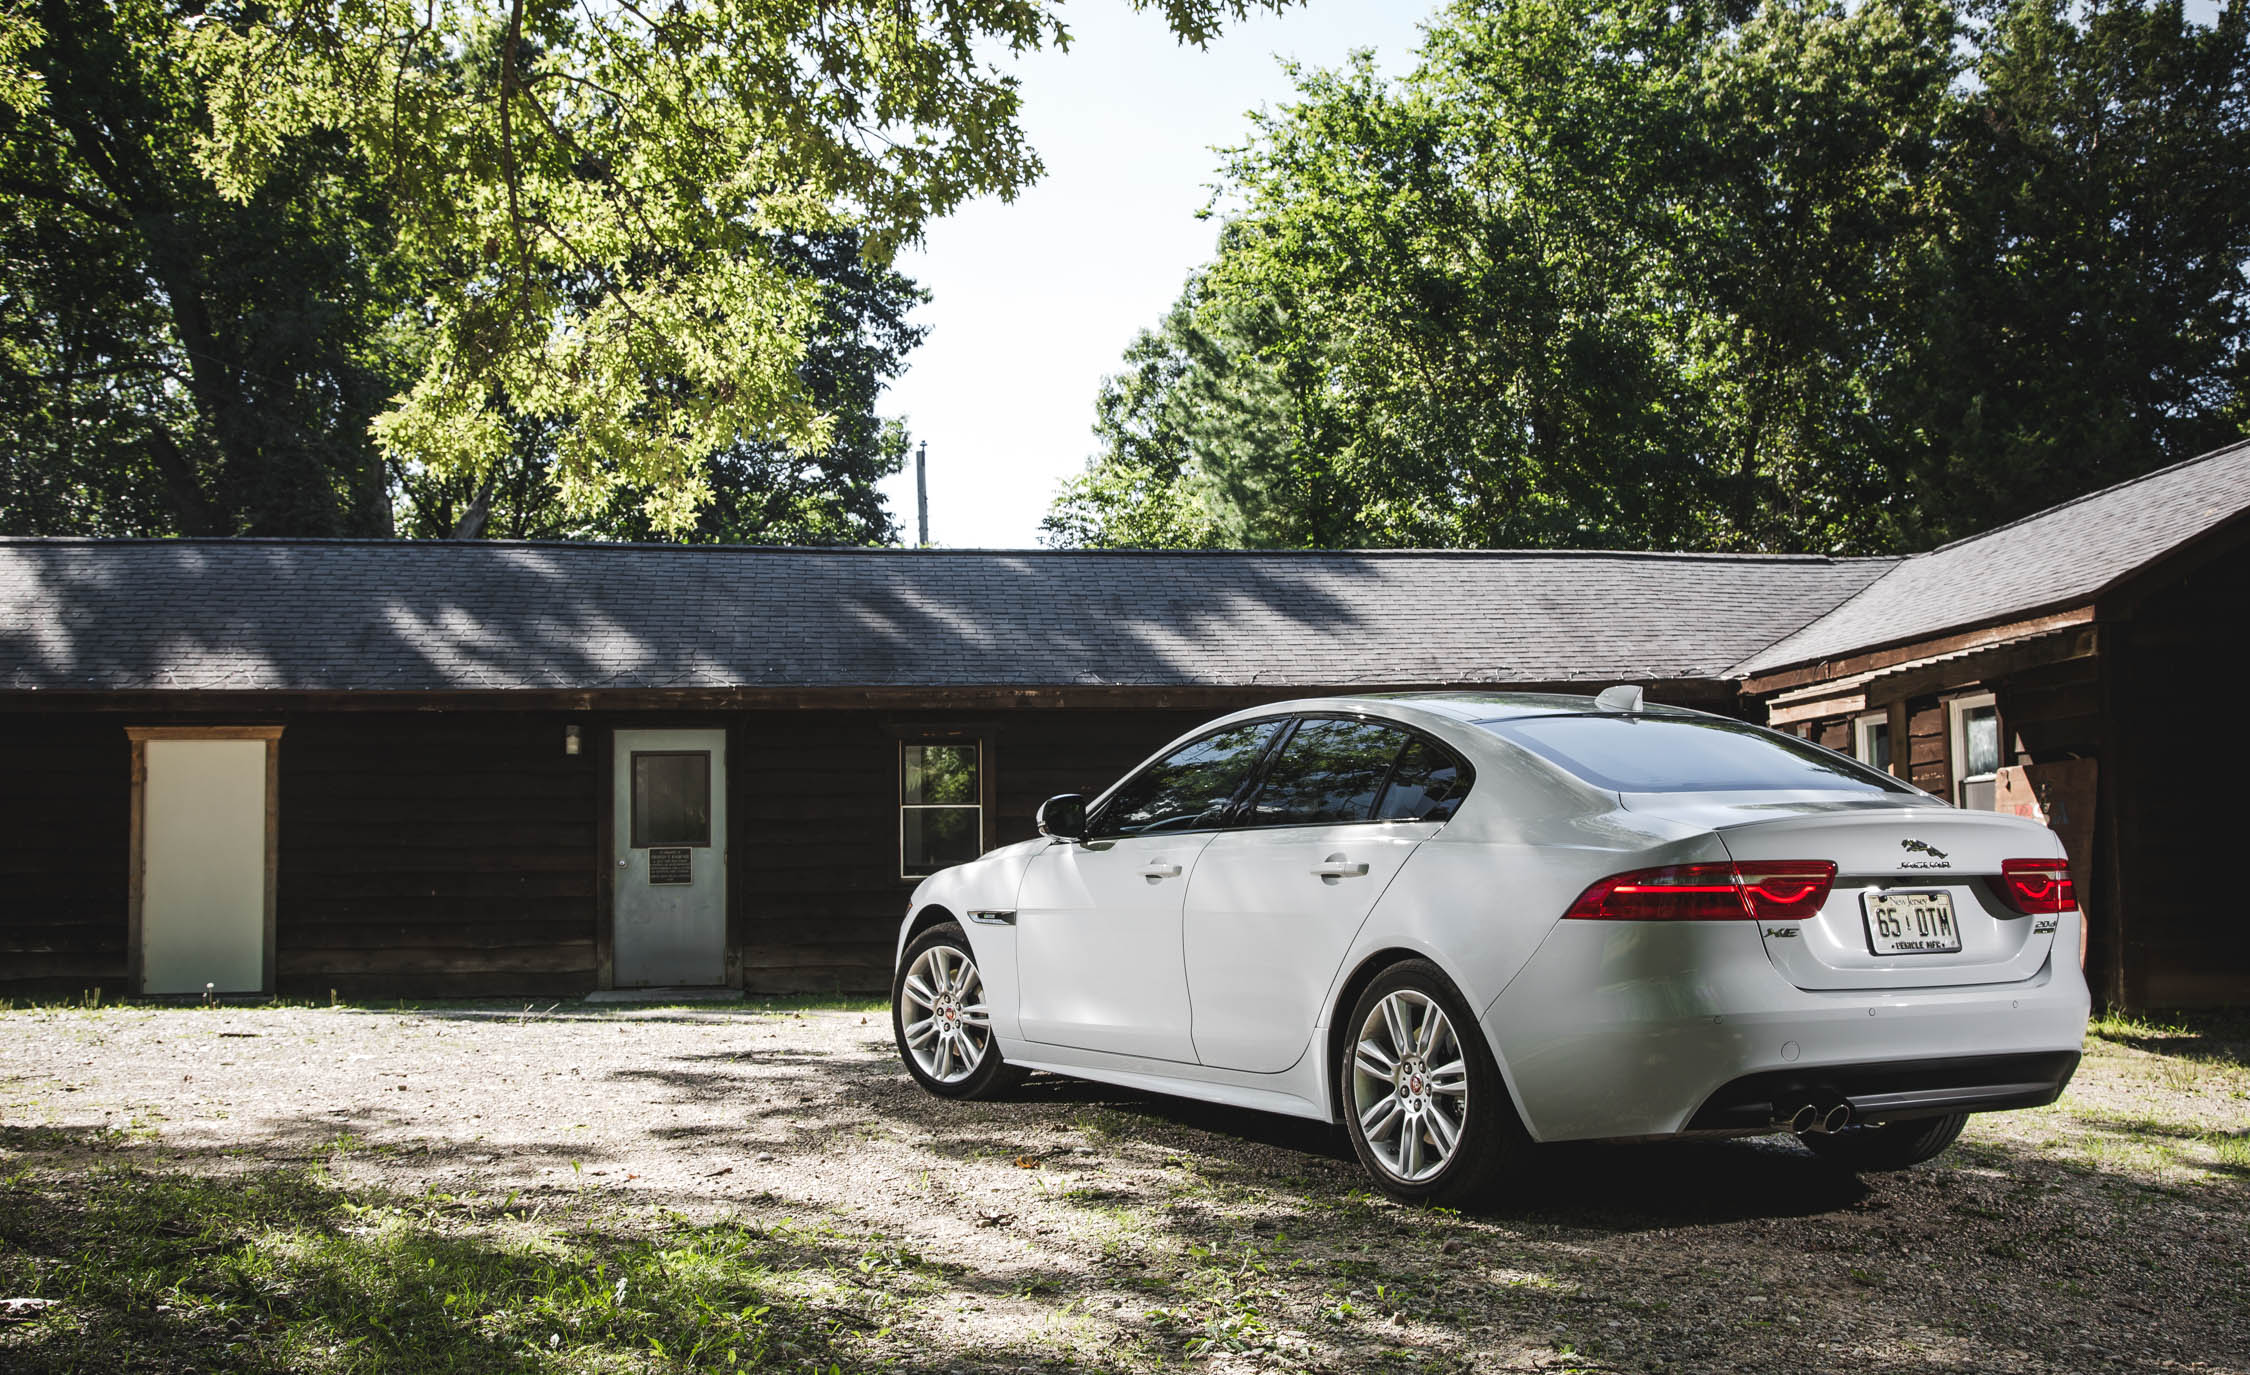 2017 Jaguar Xe White Exterior Rear And Side View (View 9 of 32)